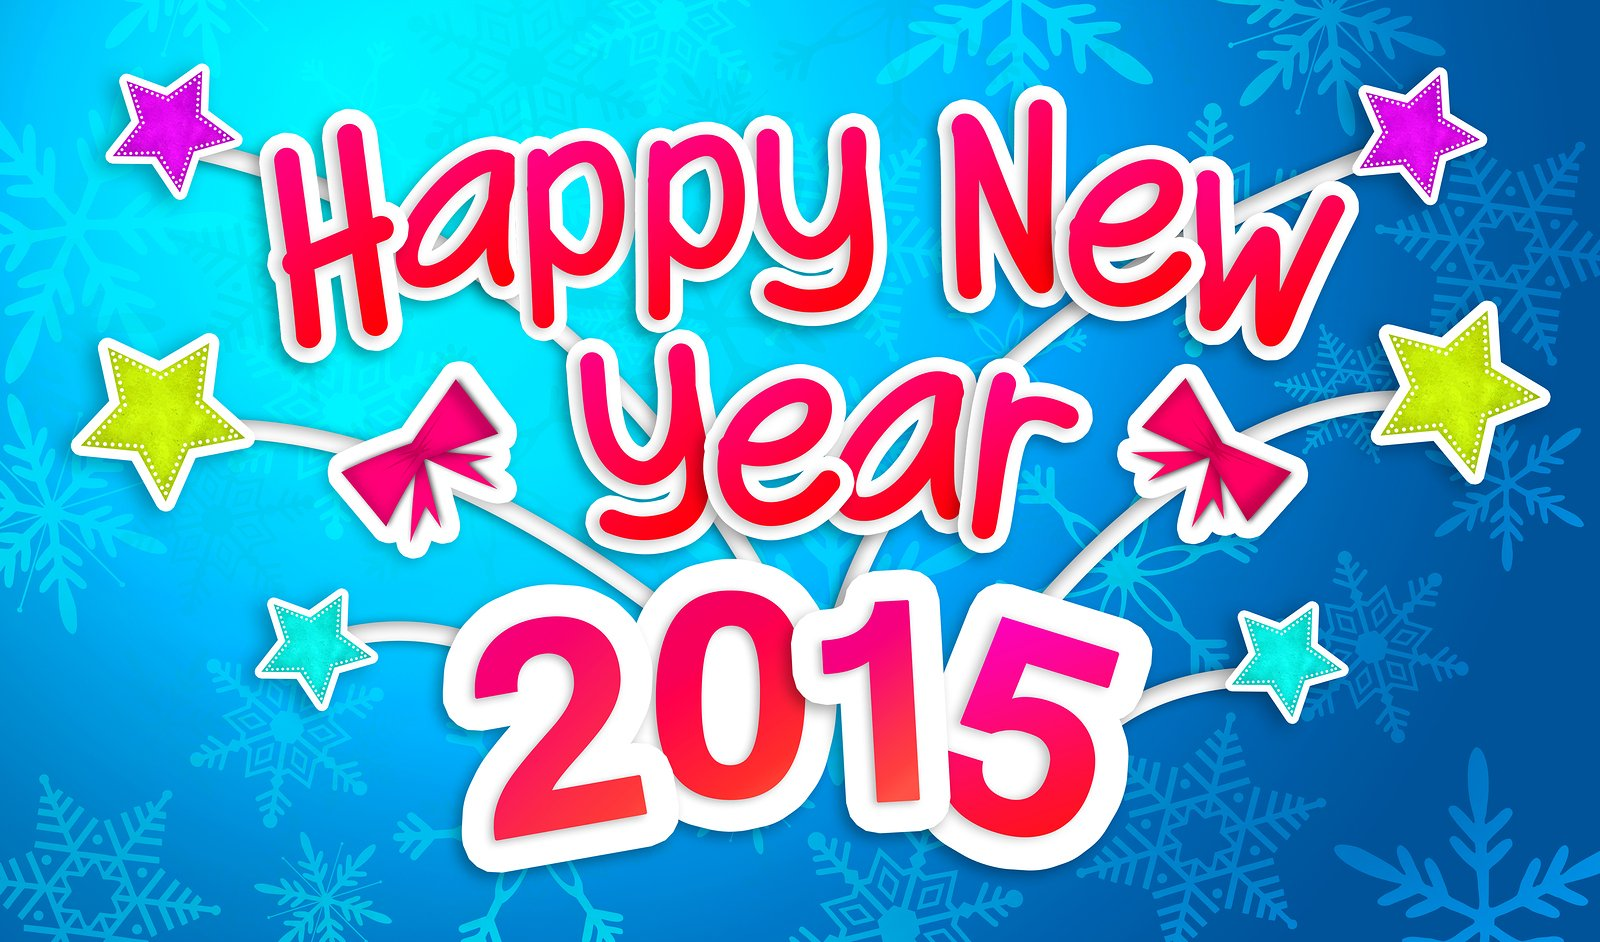 48] Happy New Year 2015 Pc Wallpaper on WallpaperSafari 1600x942